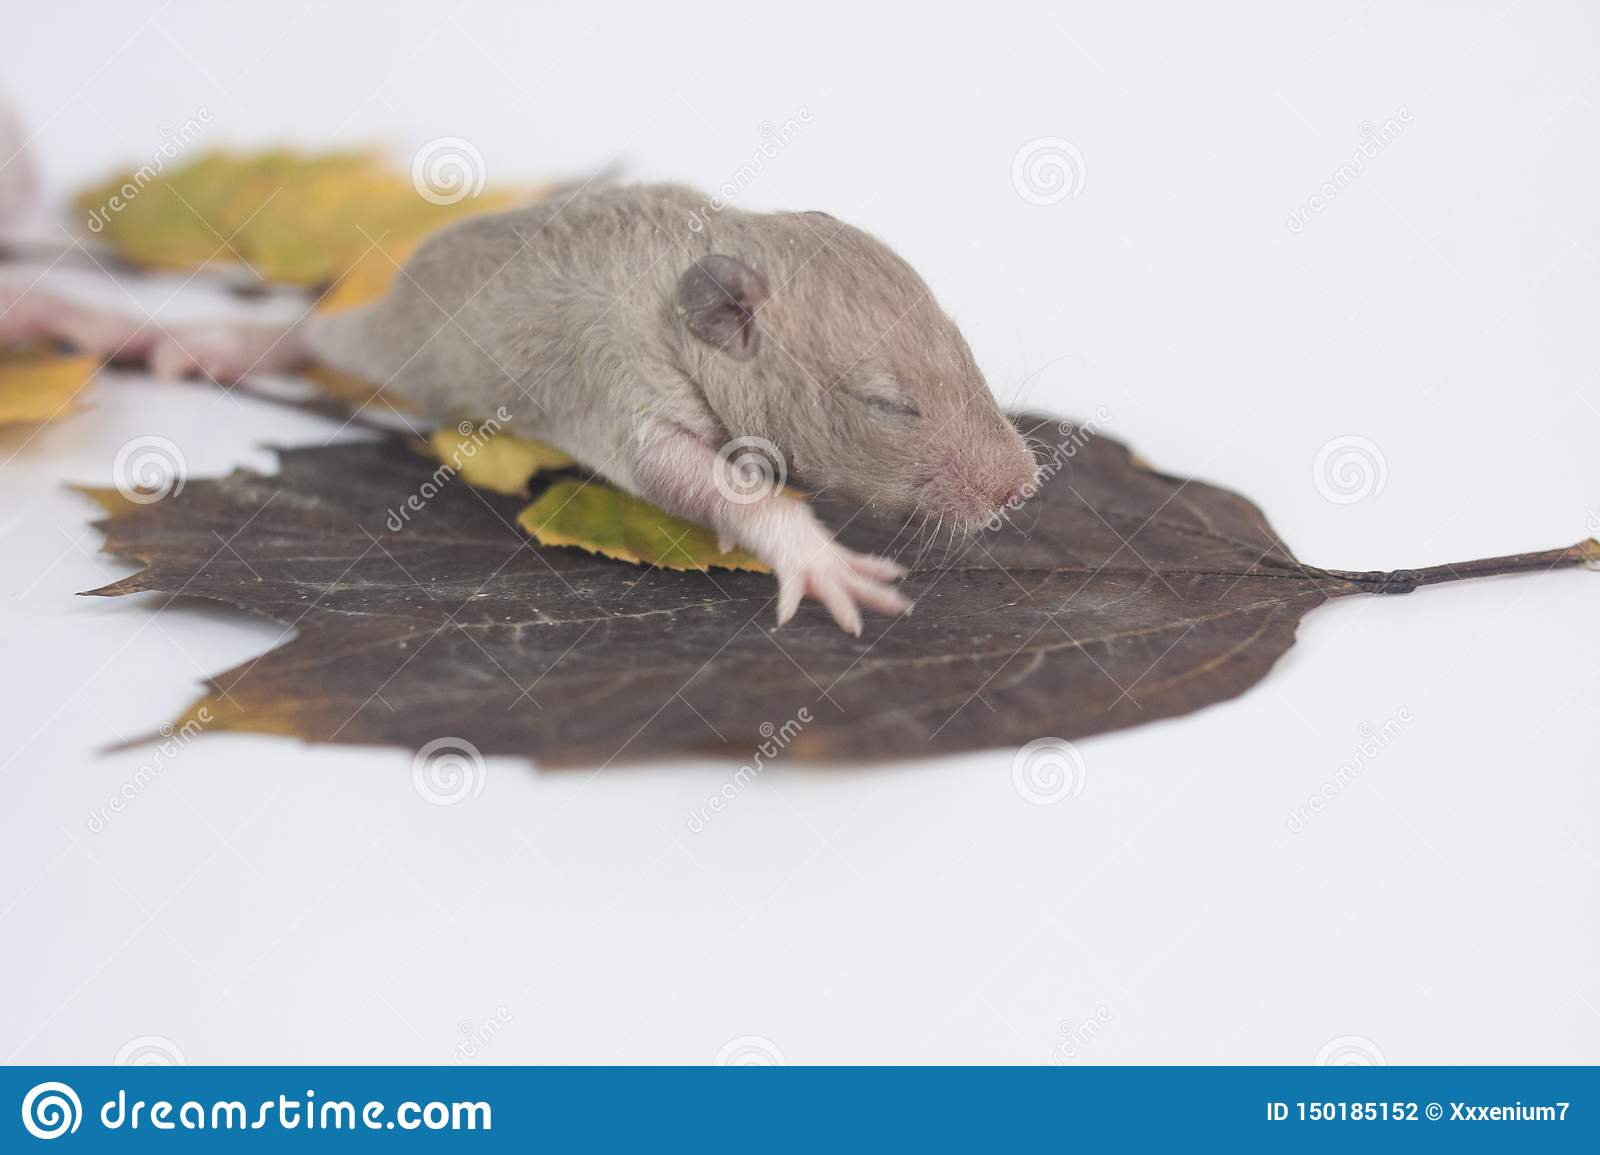 The Mouse Sits On The Leaf Newborn Baby Rat Closeup Stock Photo Image Of Home Mouse 150185152